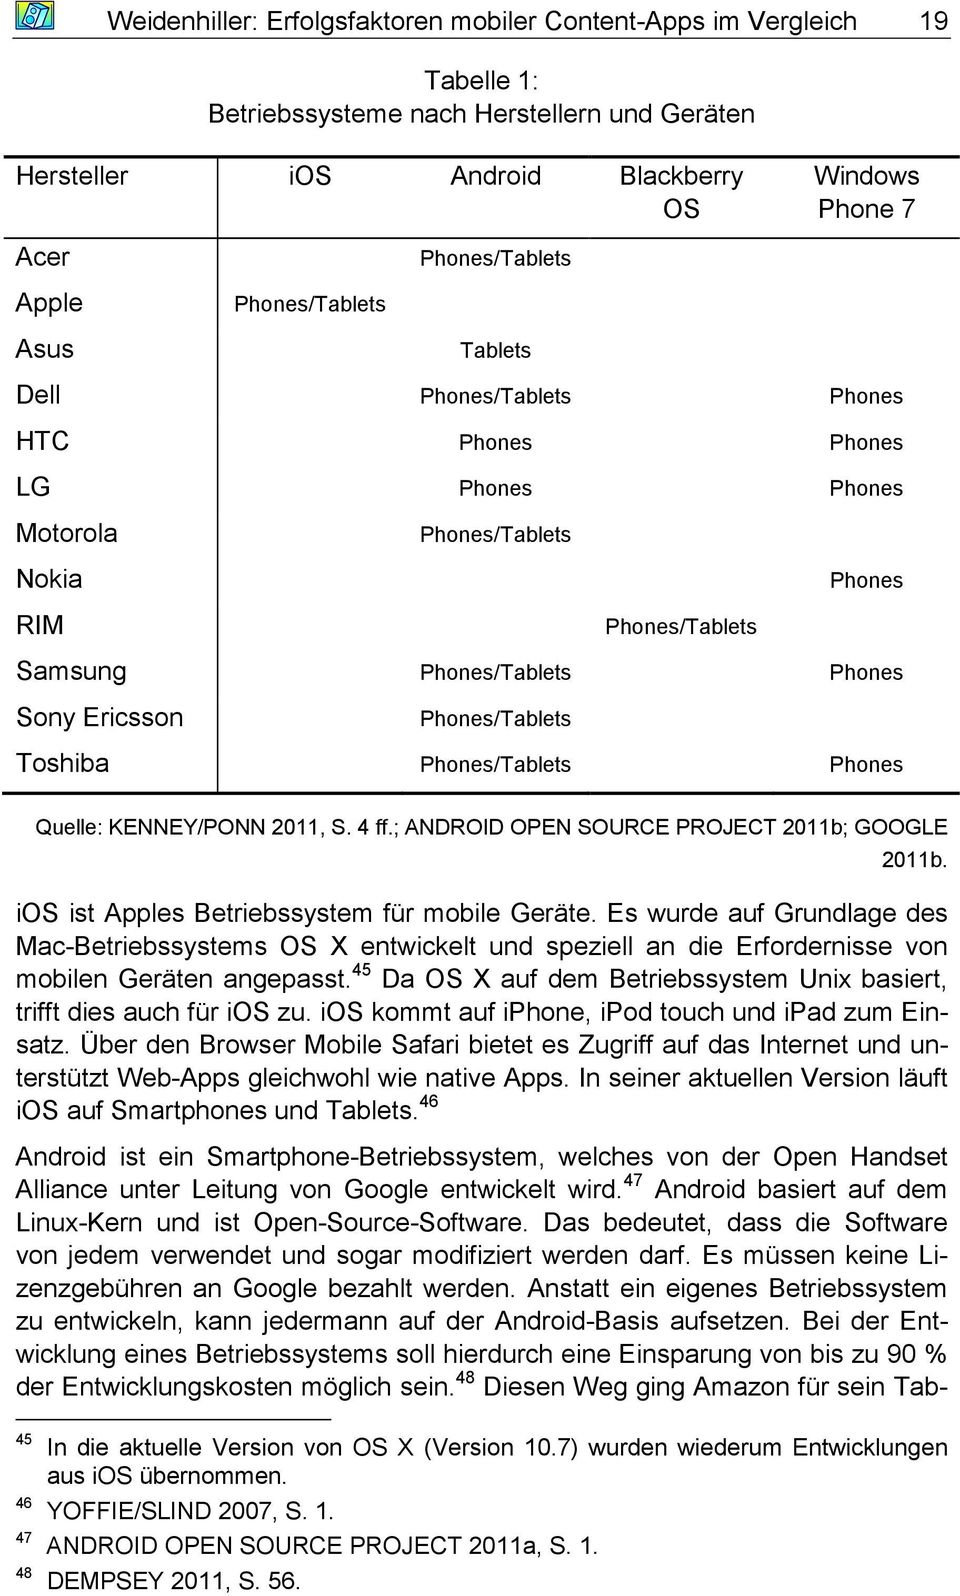 Ericsson Phones/Tablets Toshiba Phones/Tablets Phones Quelle: KENNEY/PONN 2011, S. 4 ff.; ANDROID OPEN SOURCE PROJECT 2011b; GOOGLE 2011b. ios ist Apples Betriebssystem für mobile Geräte.